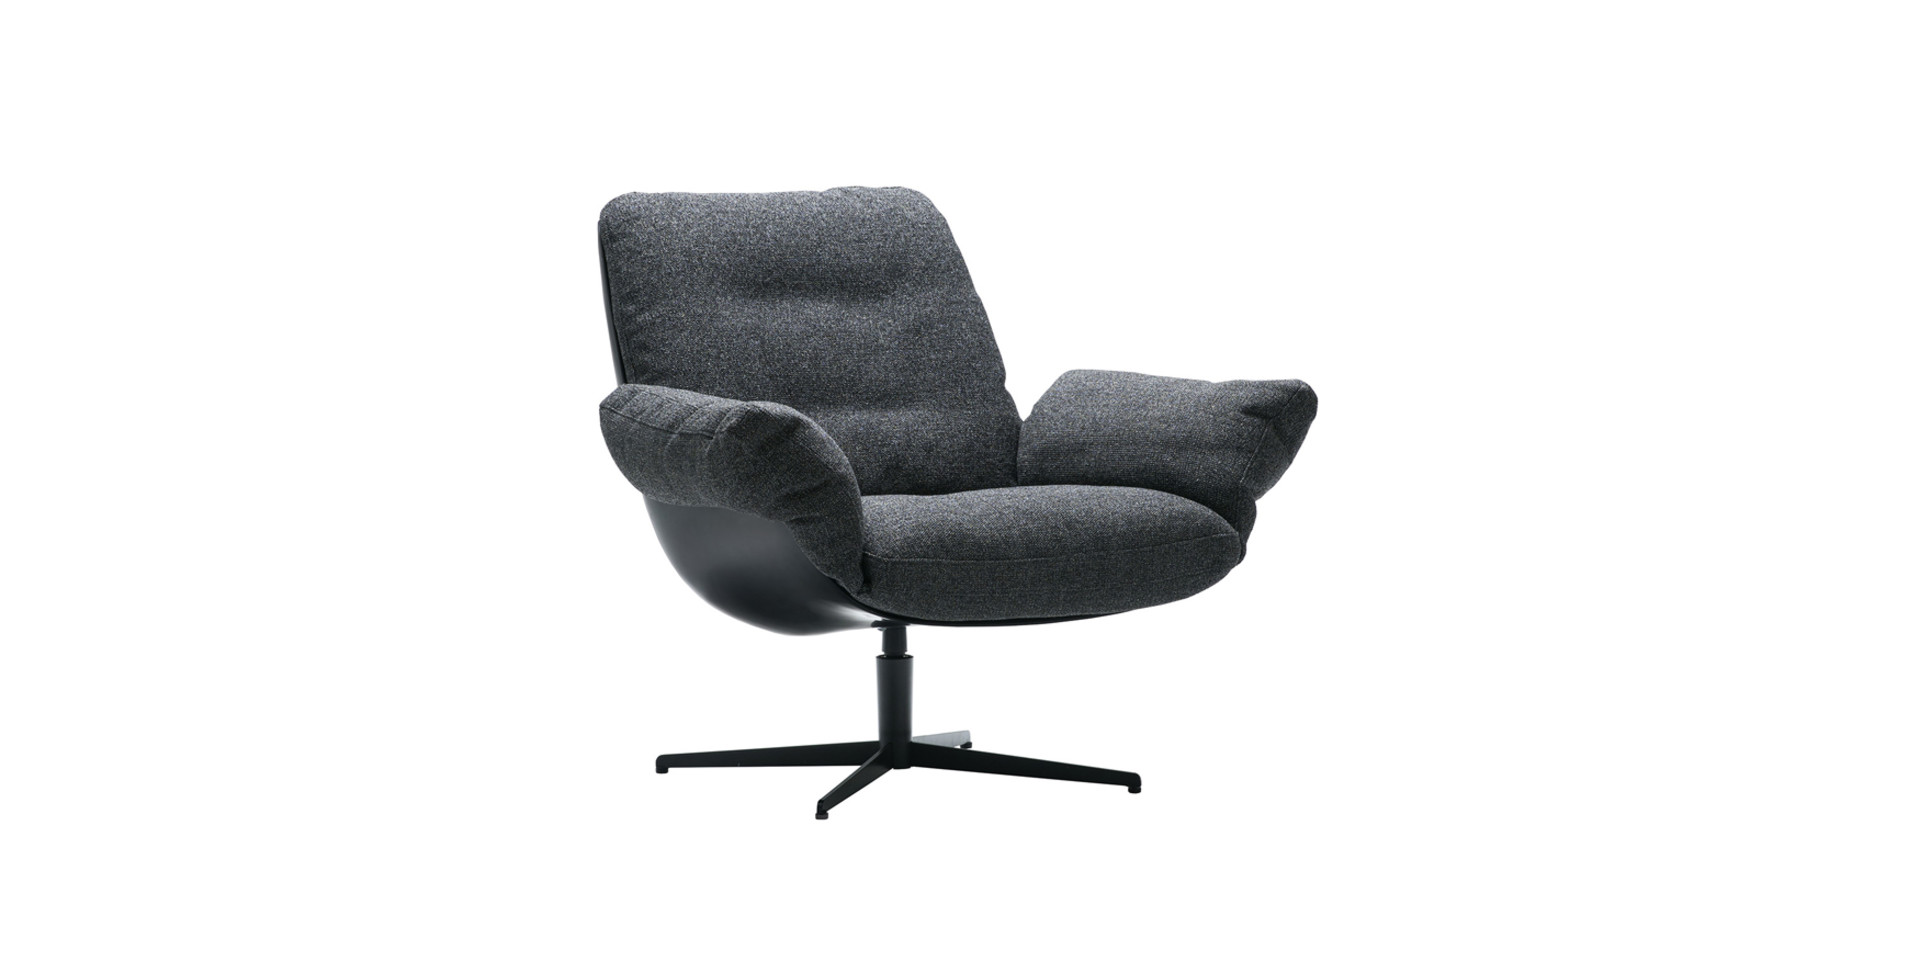 SOFTBIRD_armchair_swivel_black_origin_53_dark_grey_2